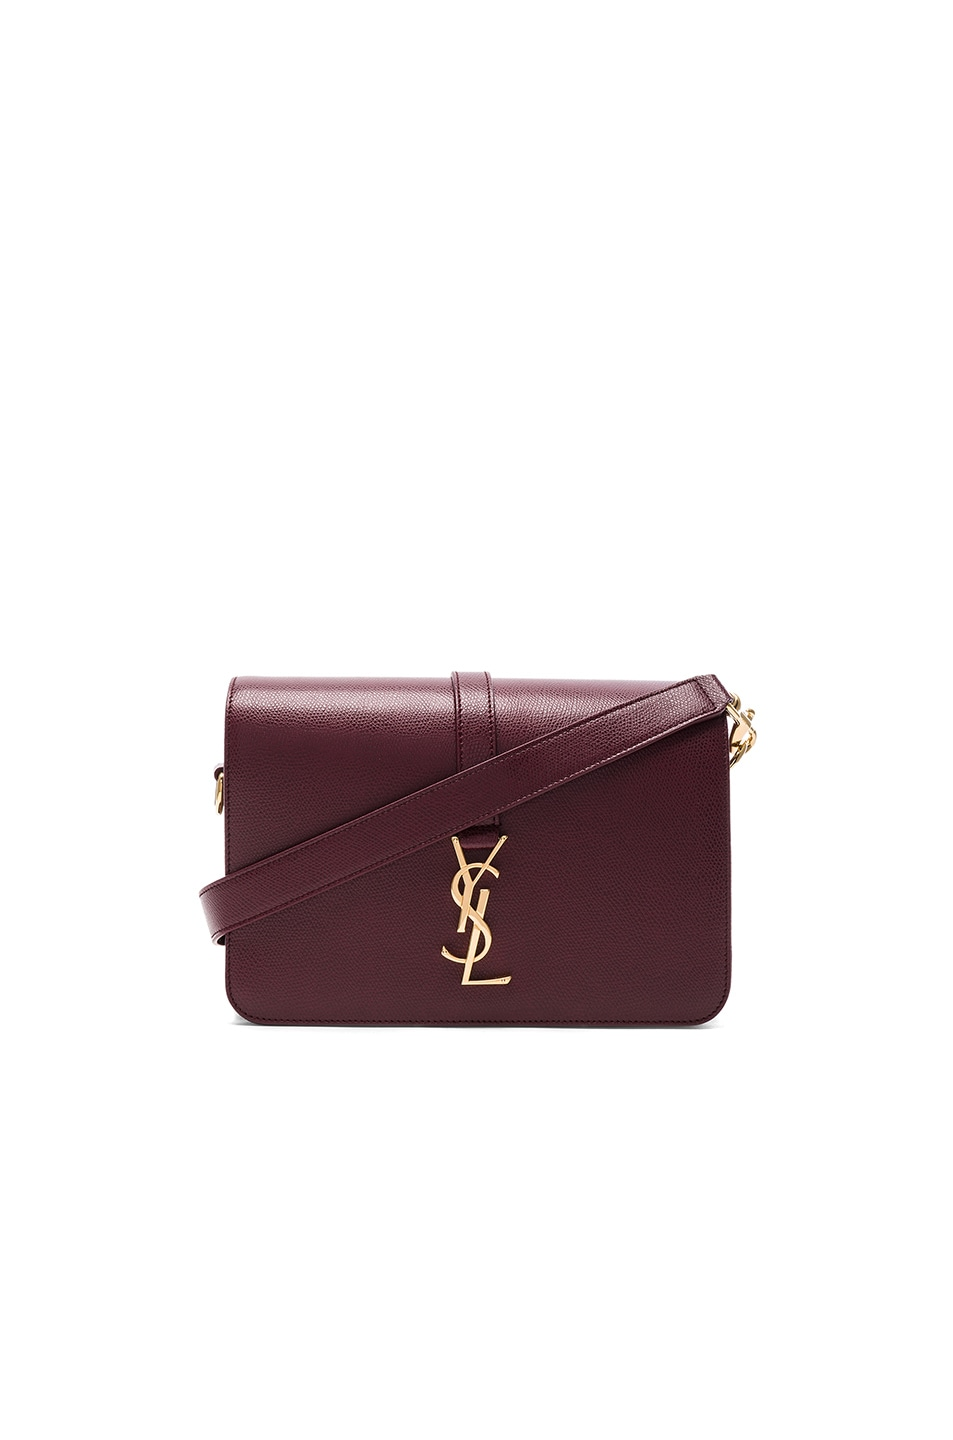 Image 1 of Saint Laurent Sac University Monogramme Bag in Rouge Legion